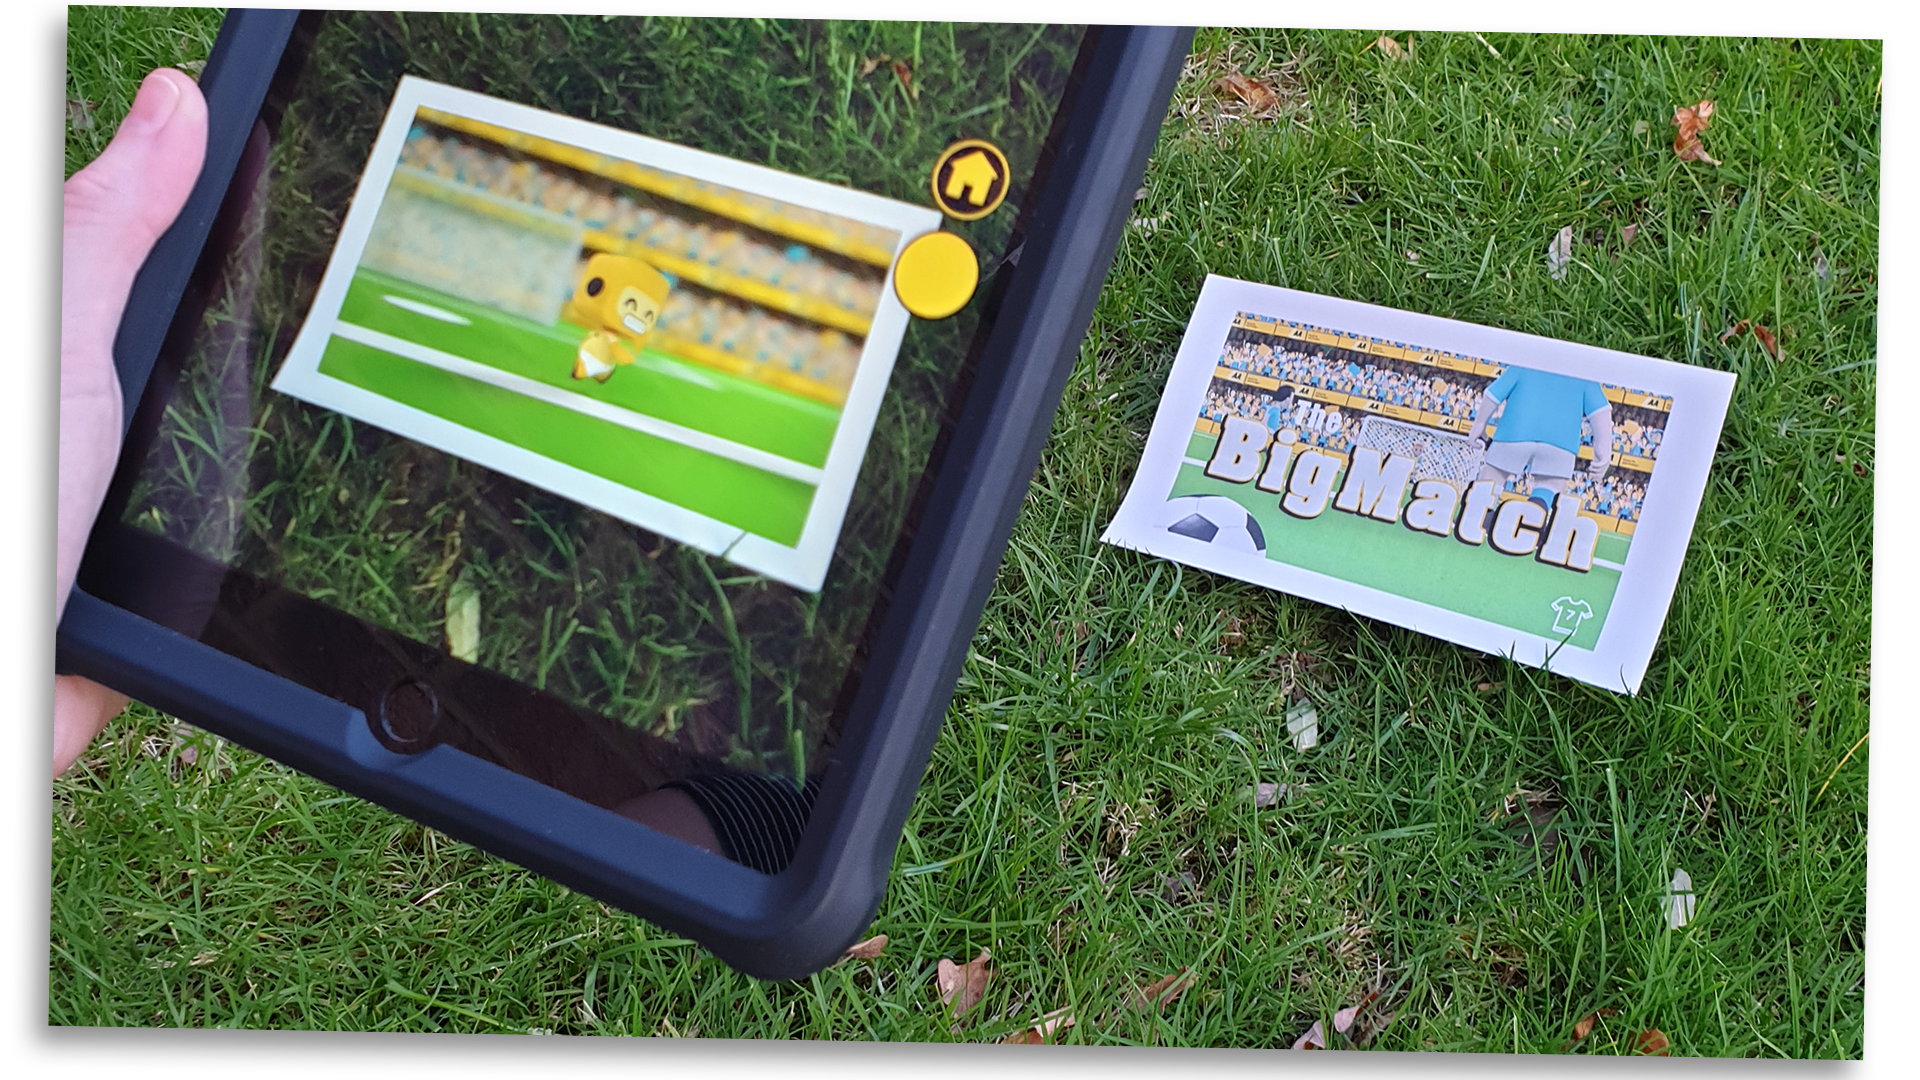 Marker based augmented reality in action